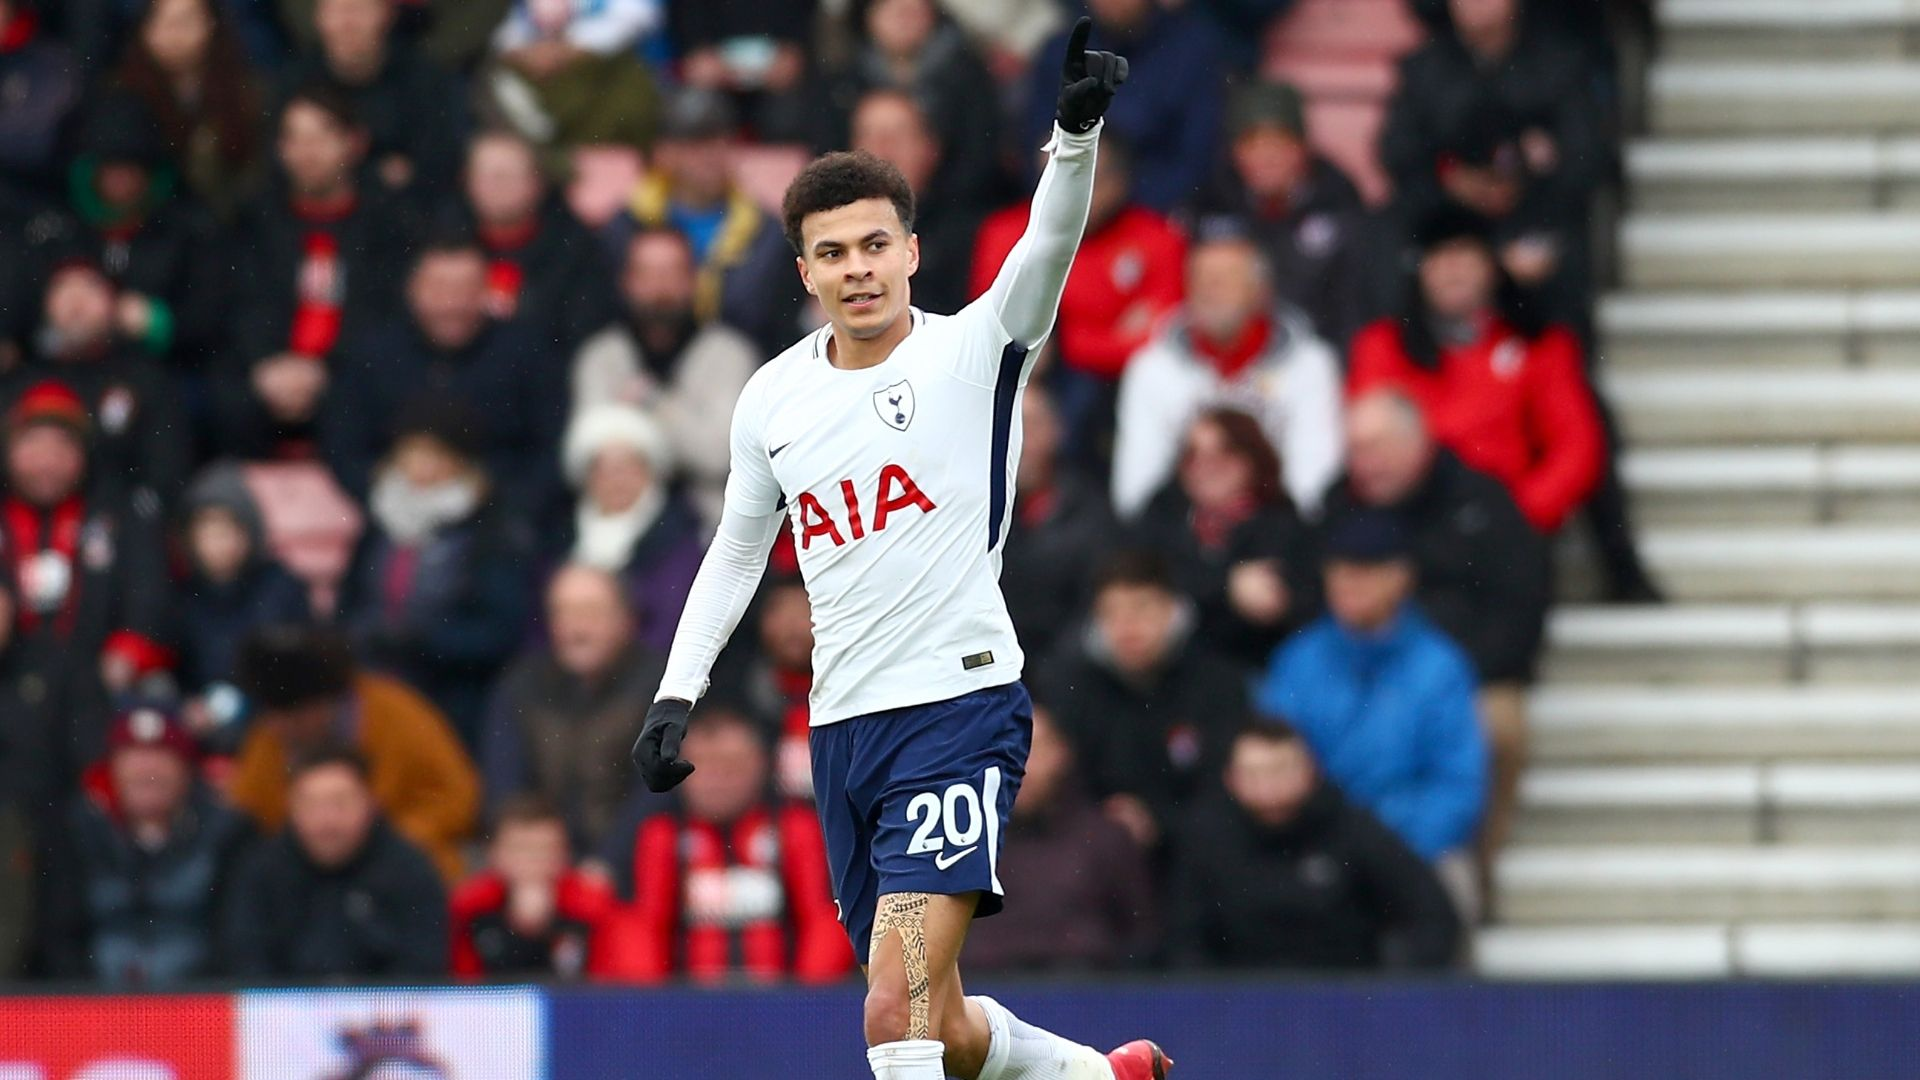 Tottenham's Alli on diving: I am not a cheat